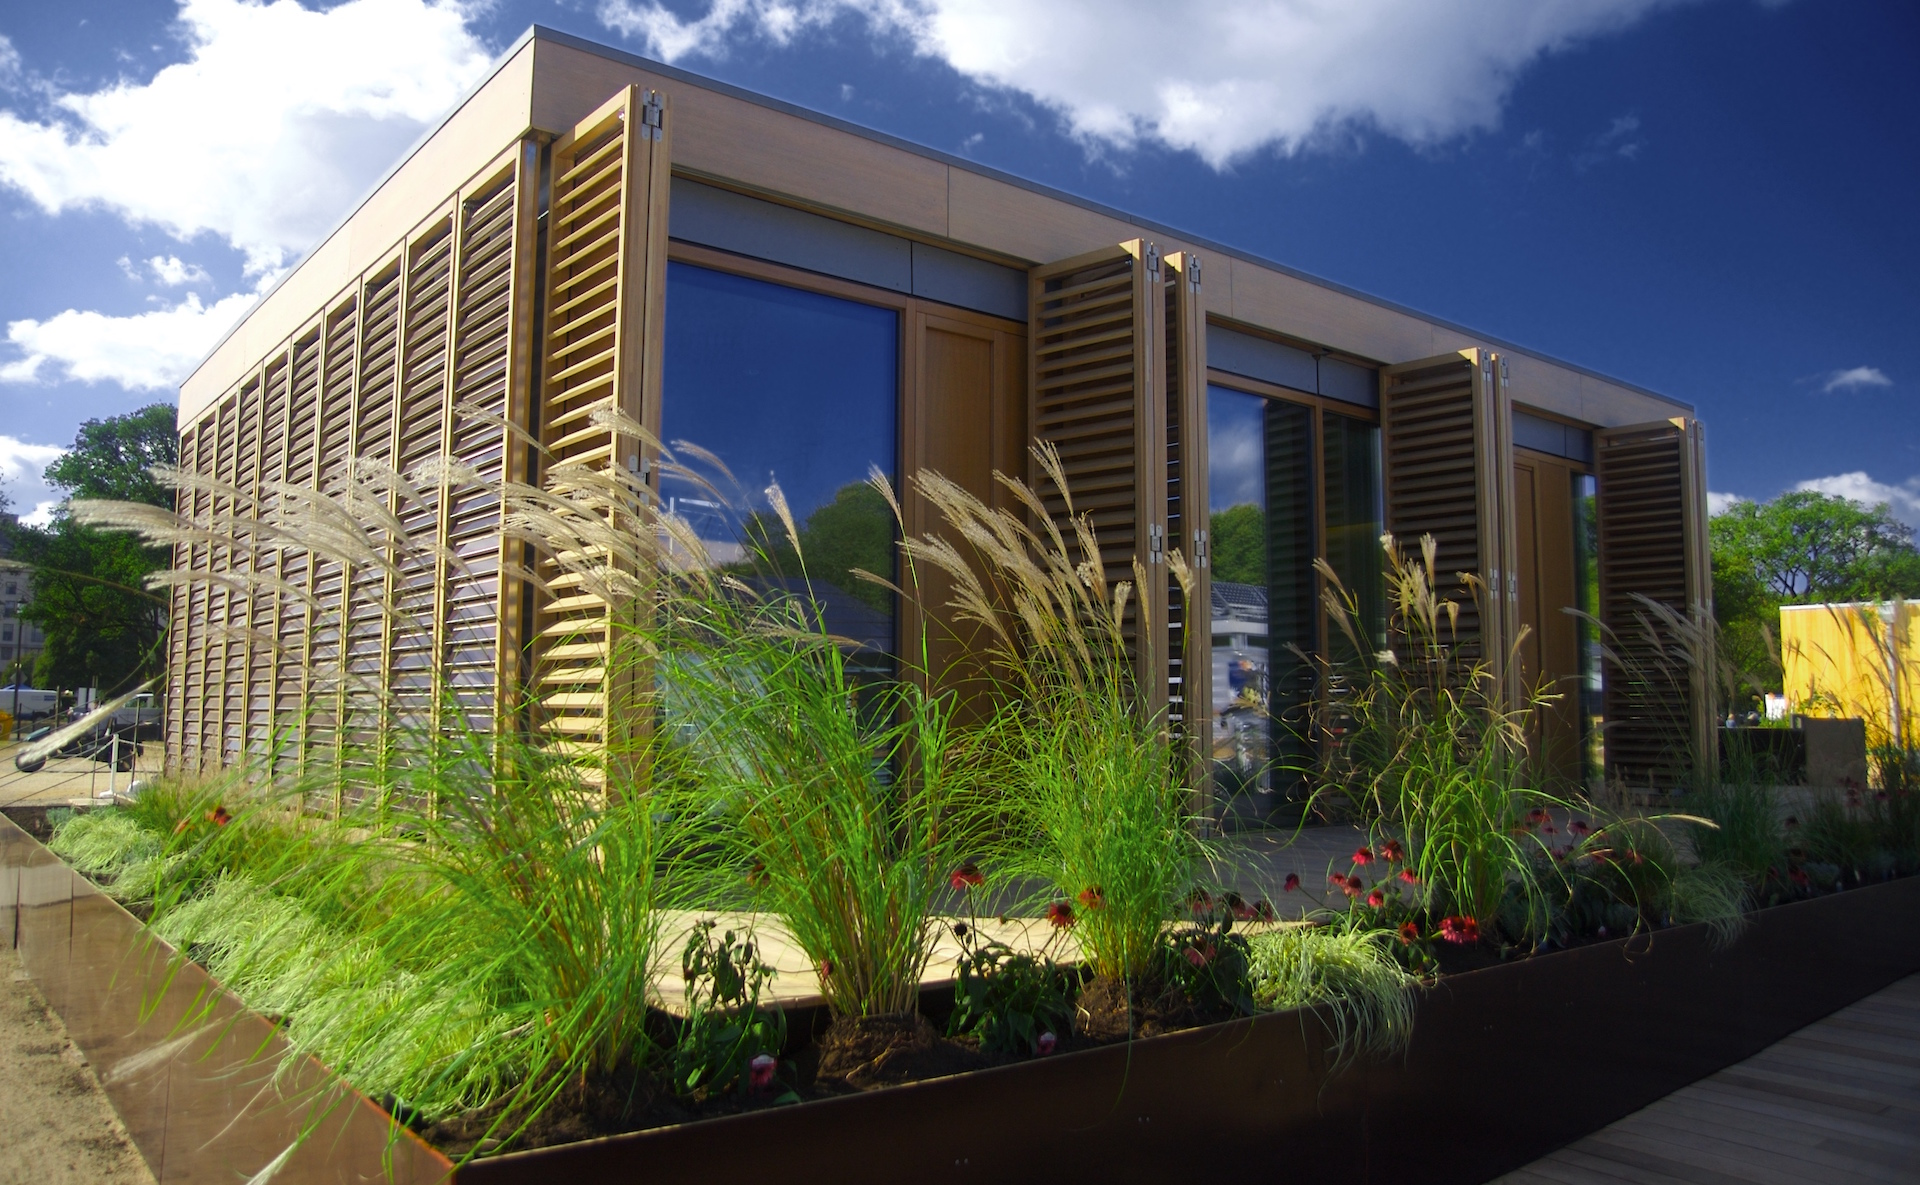 a small passive house building on Darmstadt University campus with a blue sky overhead and grasses growing in front of it